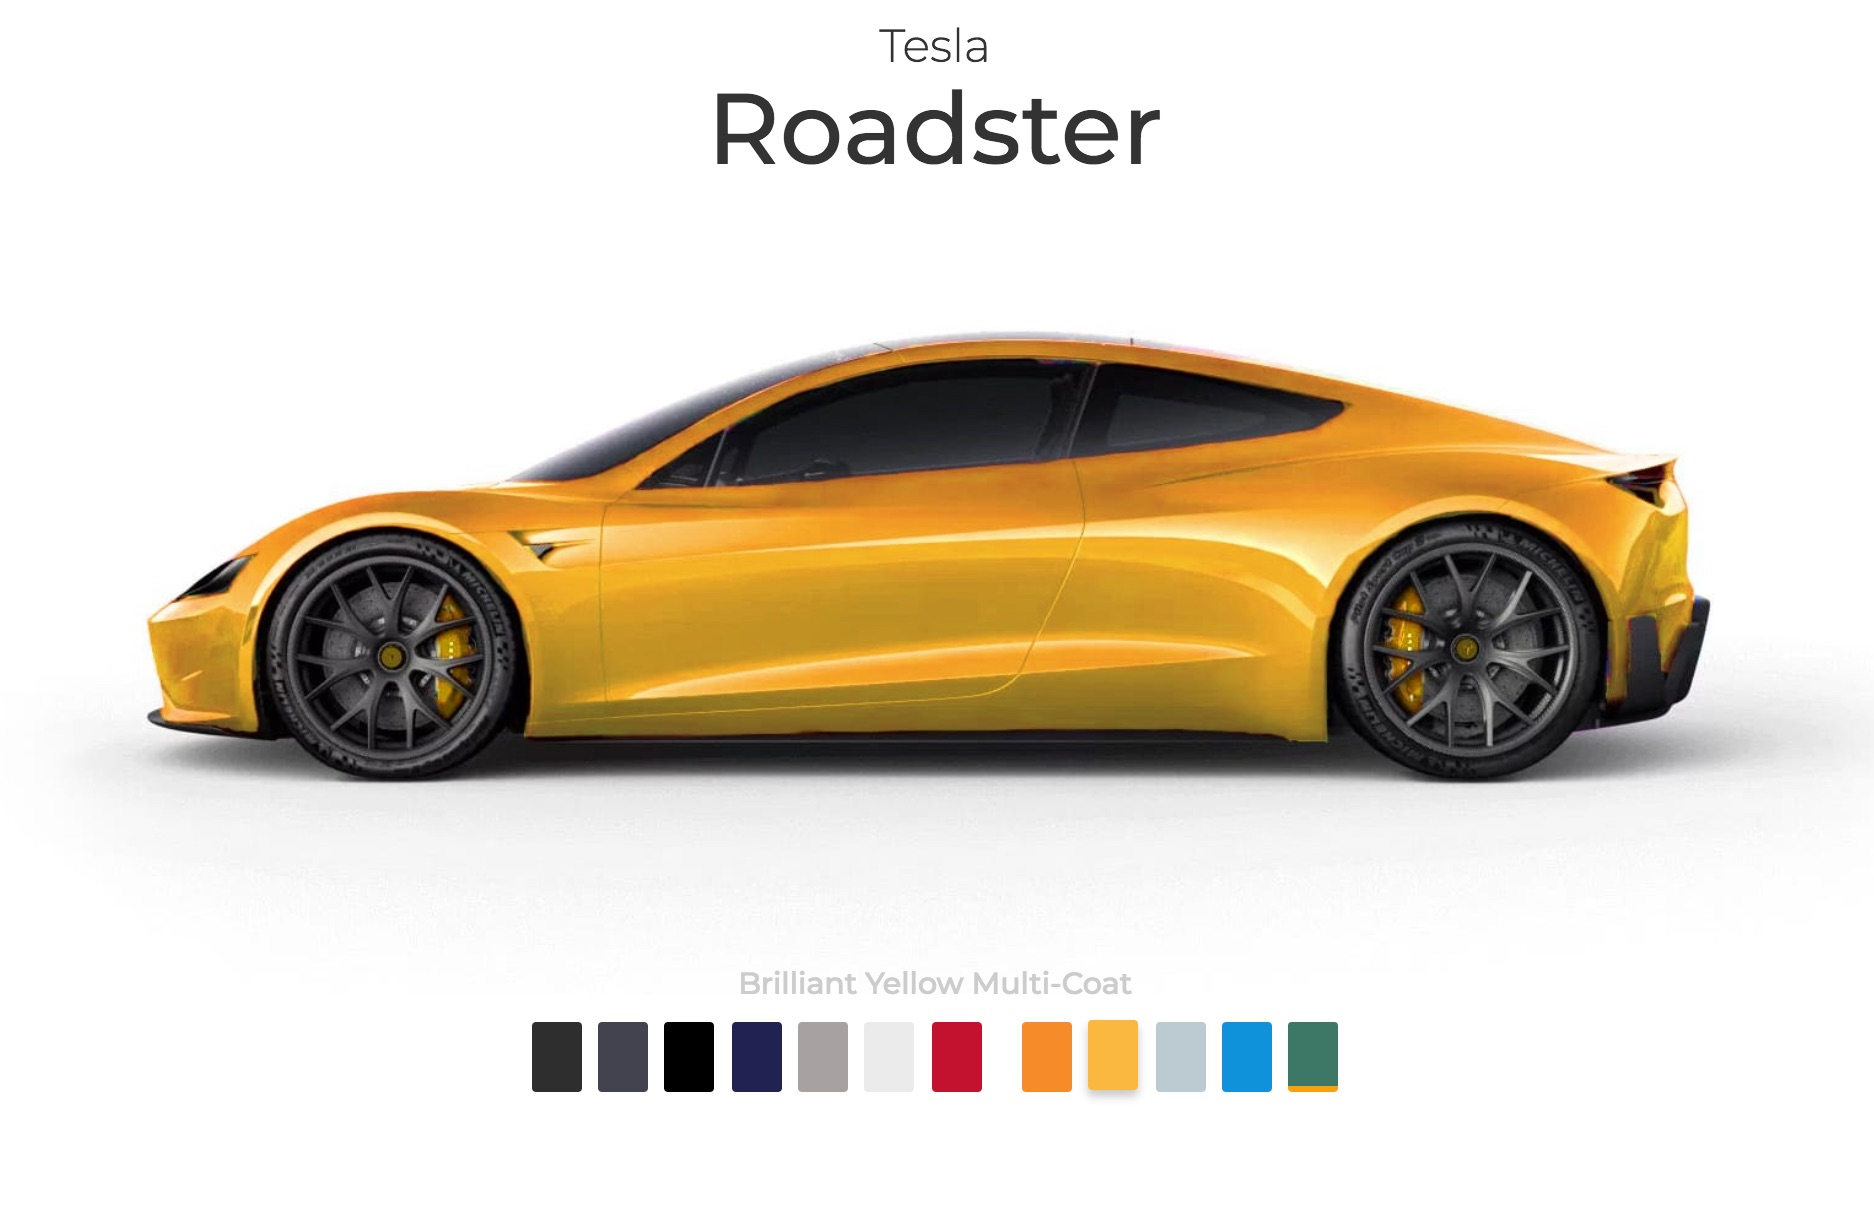 Tesla Q1 2018 Rekordverlust Aber Model 3 Auf Kurs moreover Tesla Solarcity Solar Roof Will Open Whole New Marke further Spacex Prepares Dragon 2 Feb 2018 Launch Making Strides Dragon Reuse in addition Tesla Roadster Paint Colors Online Configurator moreover Tesla Model Y Rendering Teaser Image. on tesla model 3 supercharger